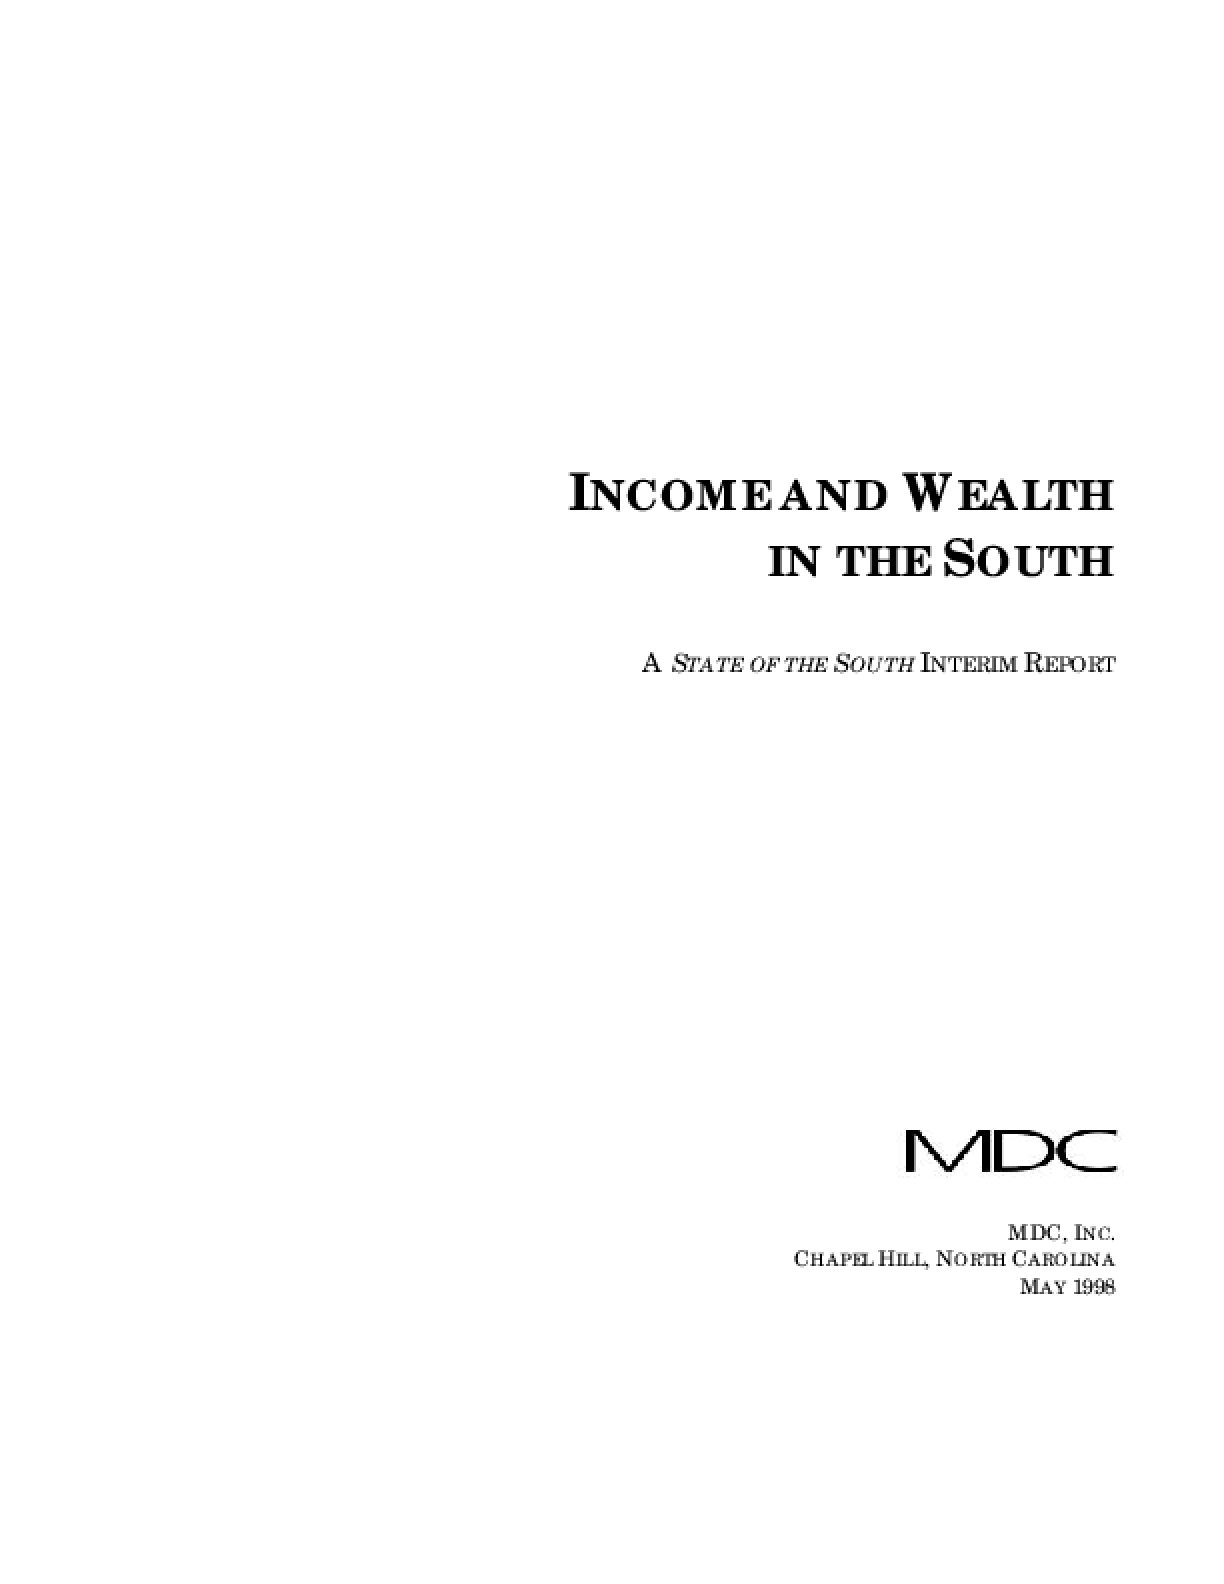 Income and Wealth in the South: A State of the South Interim Report